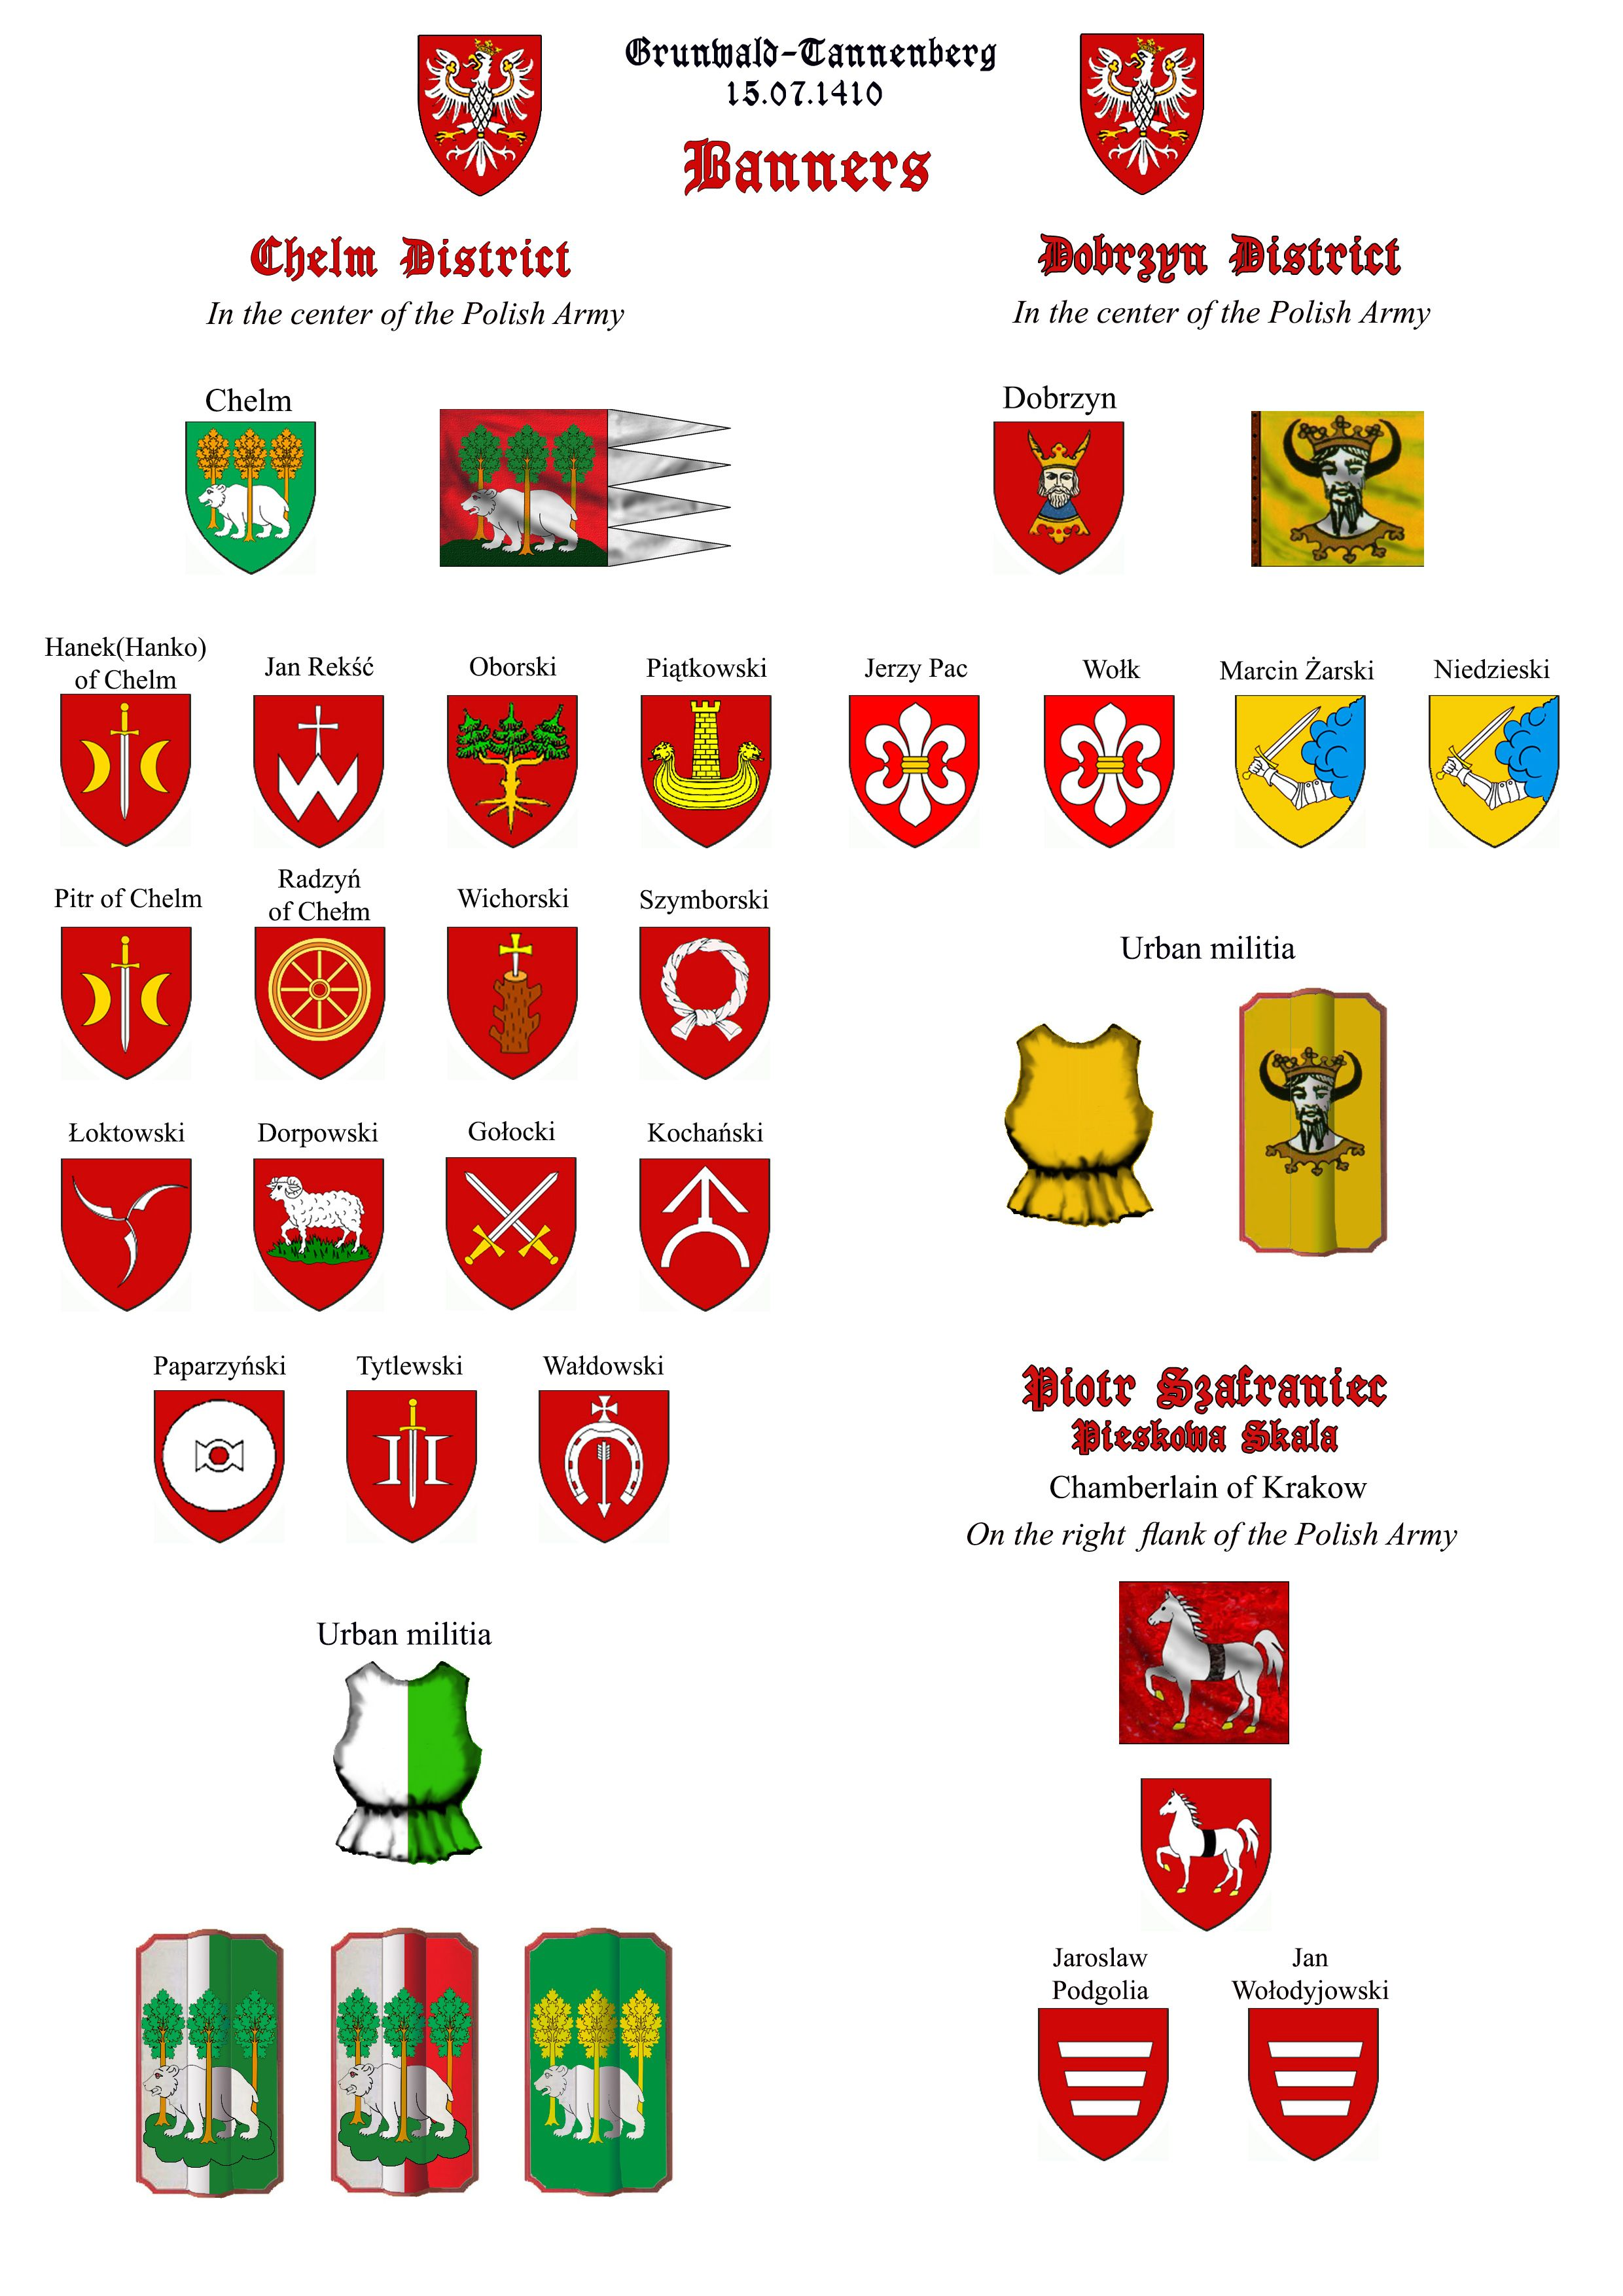 Me meaning of polish flag - Medieval Times Military Uniforms Poland Knights Warriors Banners Flags History